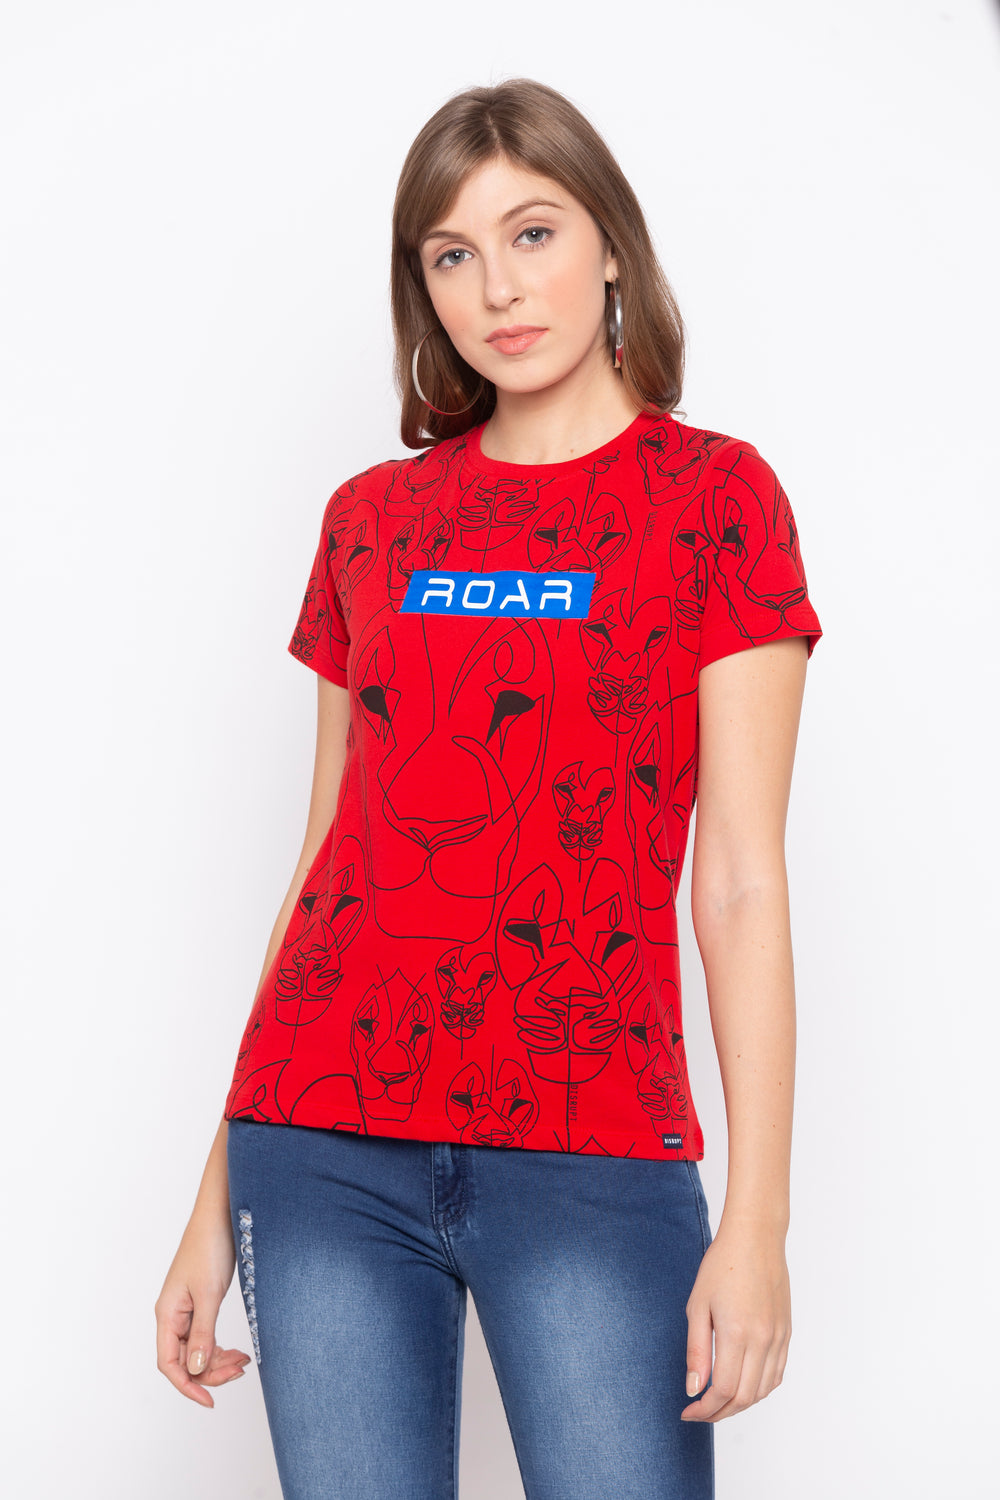 White Roar Graphic Print Cotton T-shirt For Women's